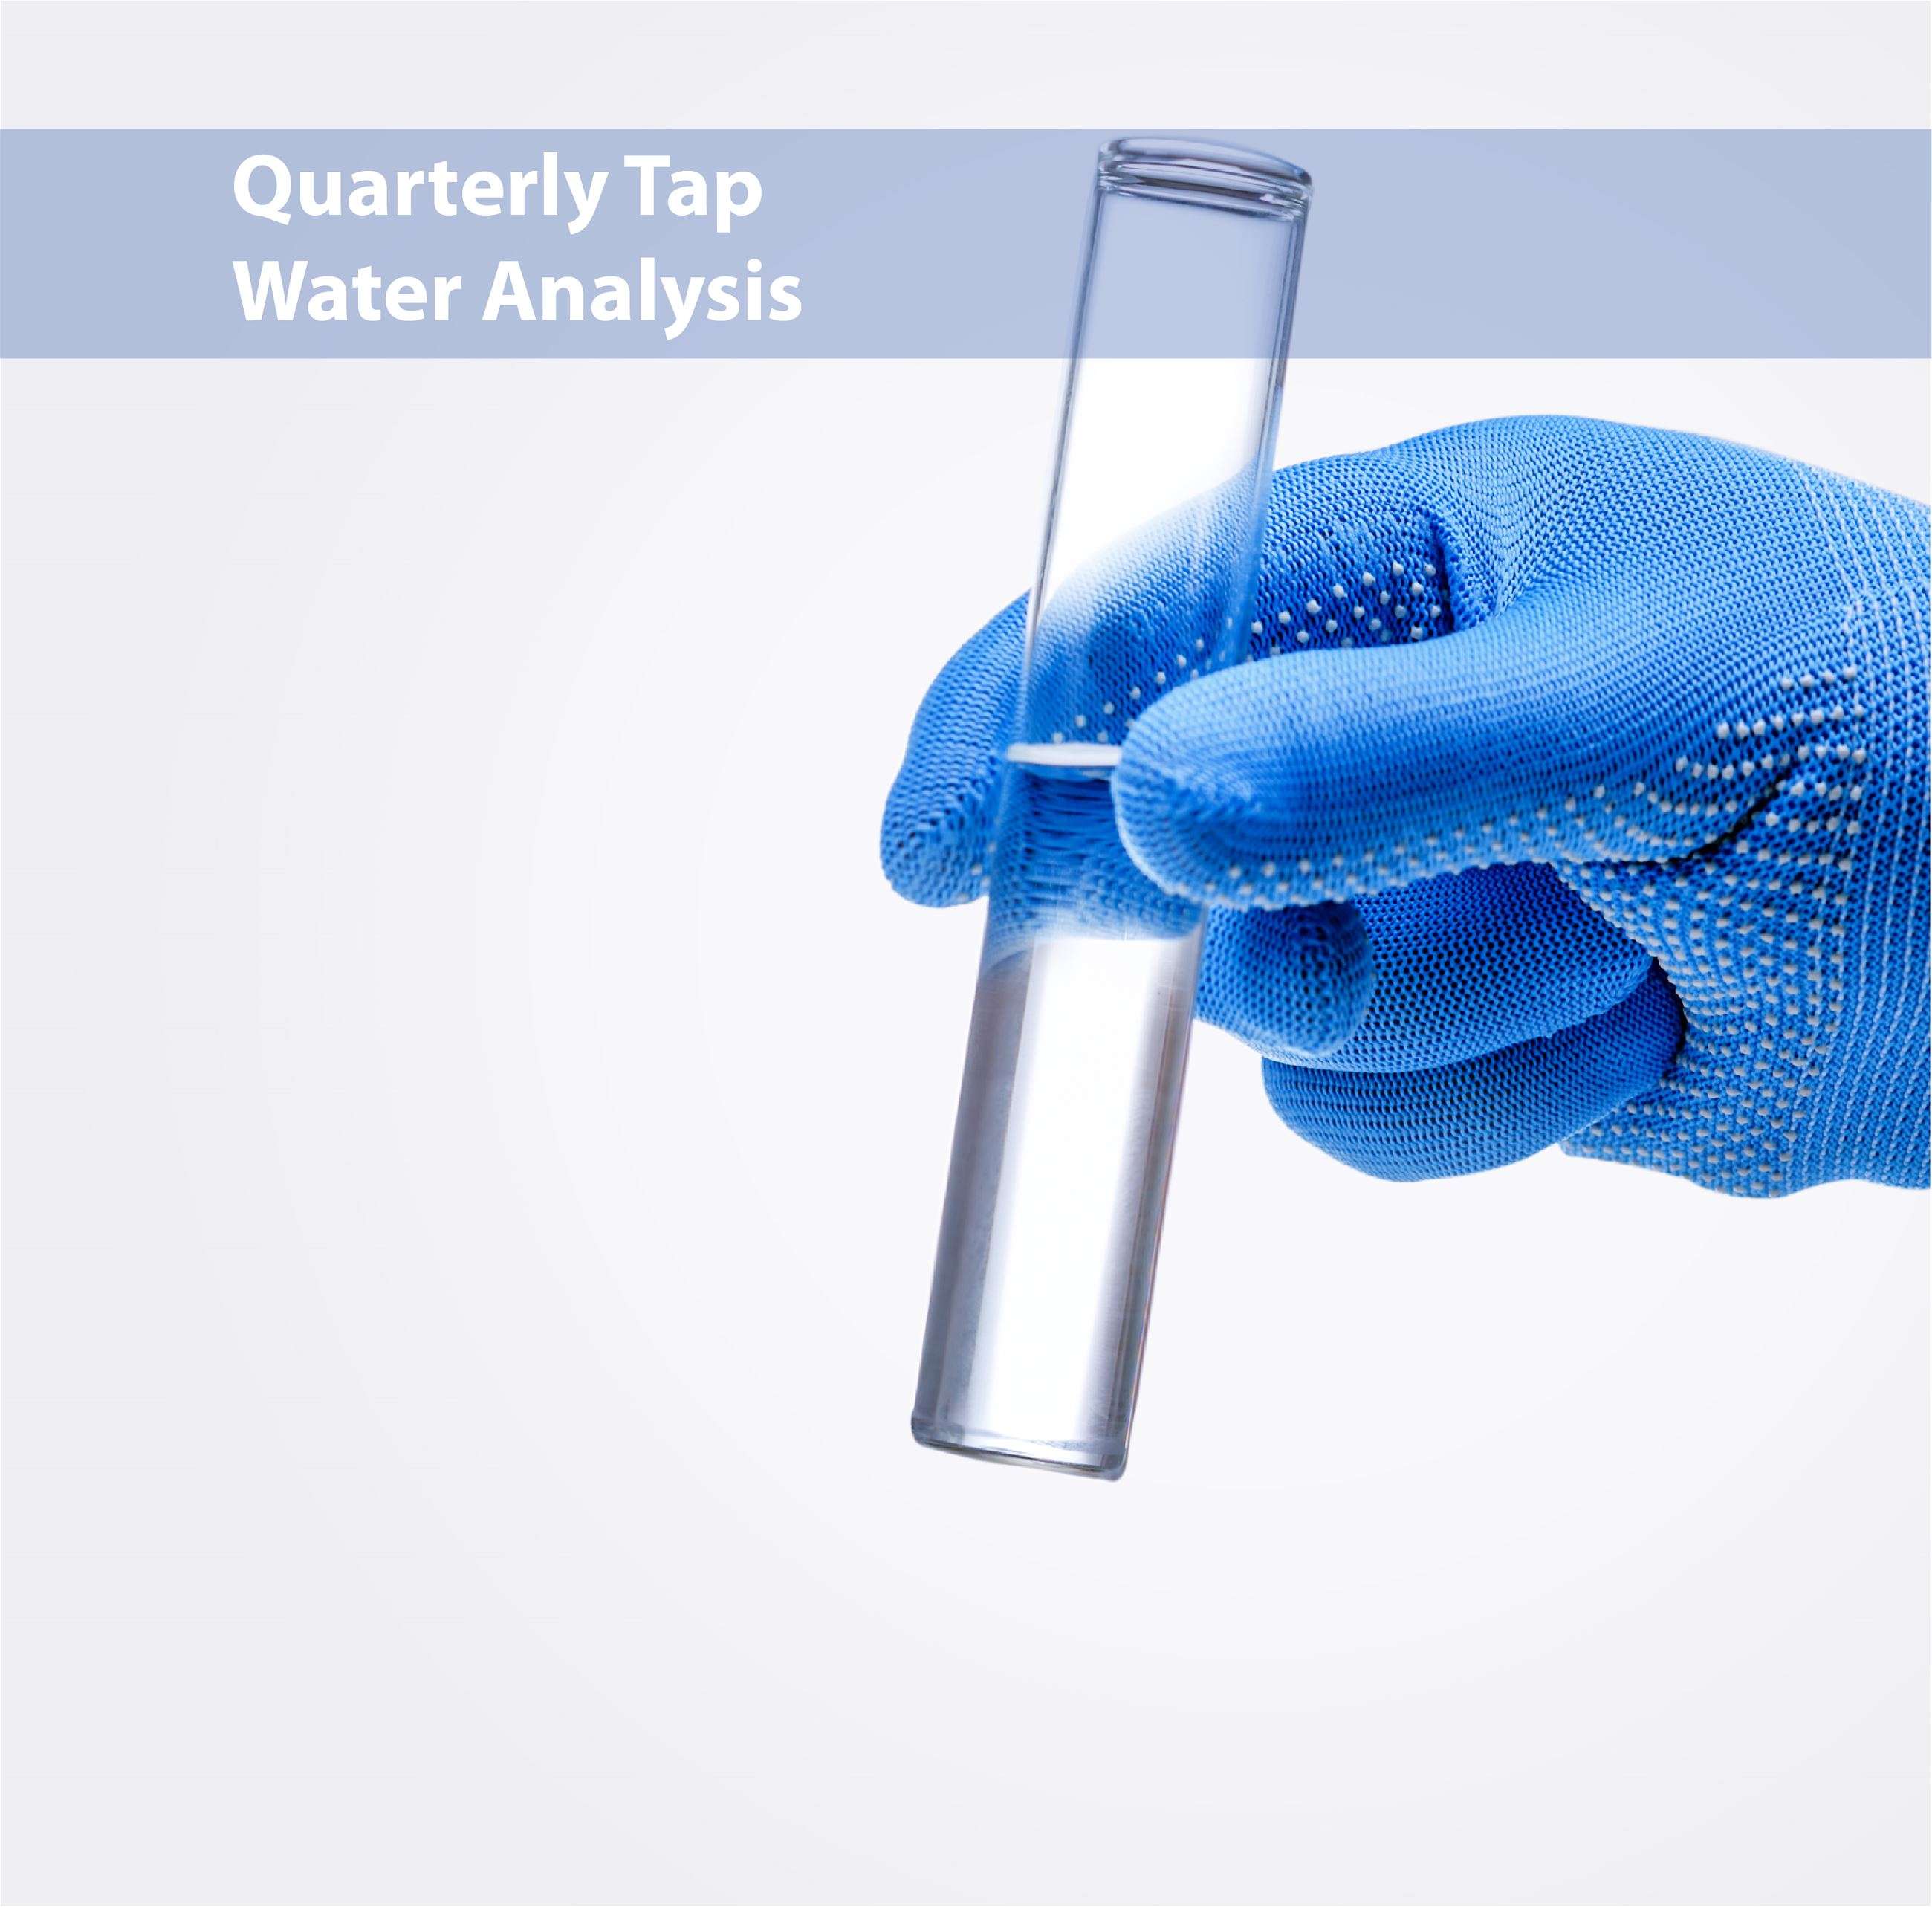 A test tube of water being held by a blue, gloved hand Opens in new window